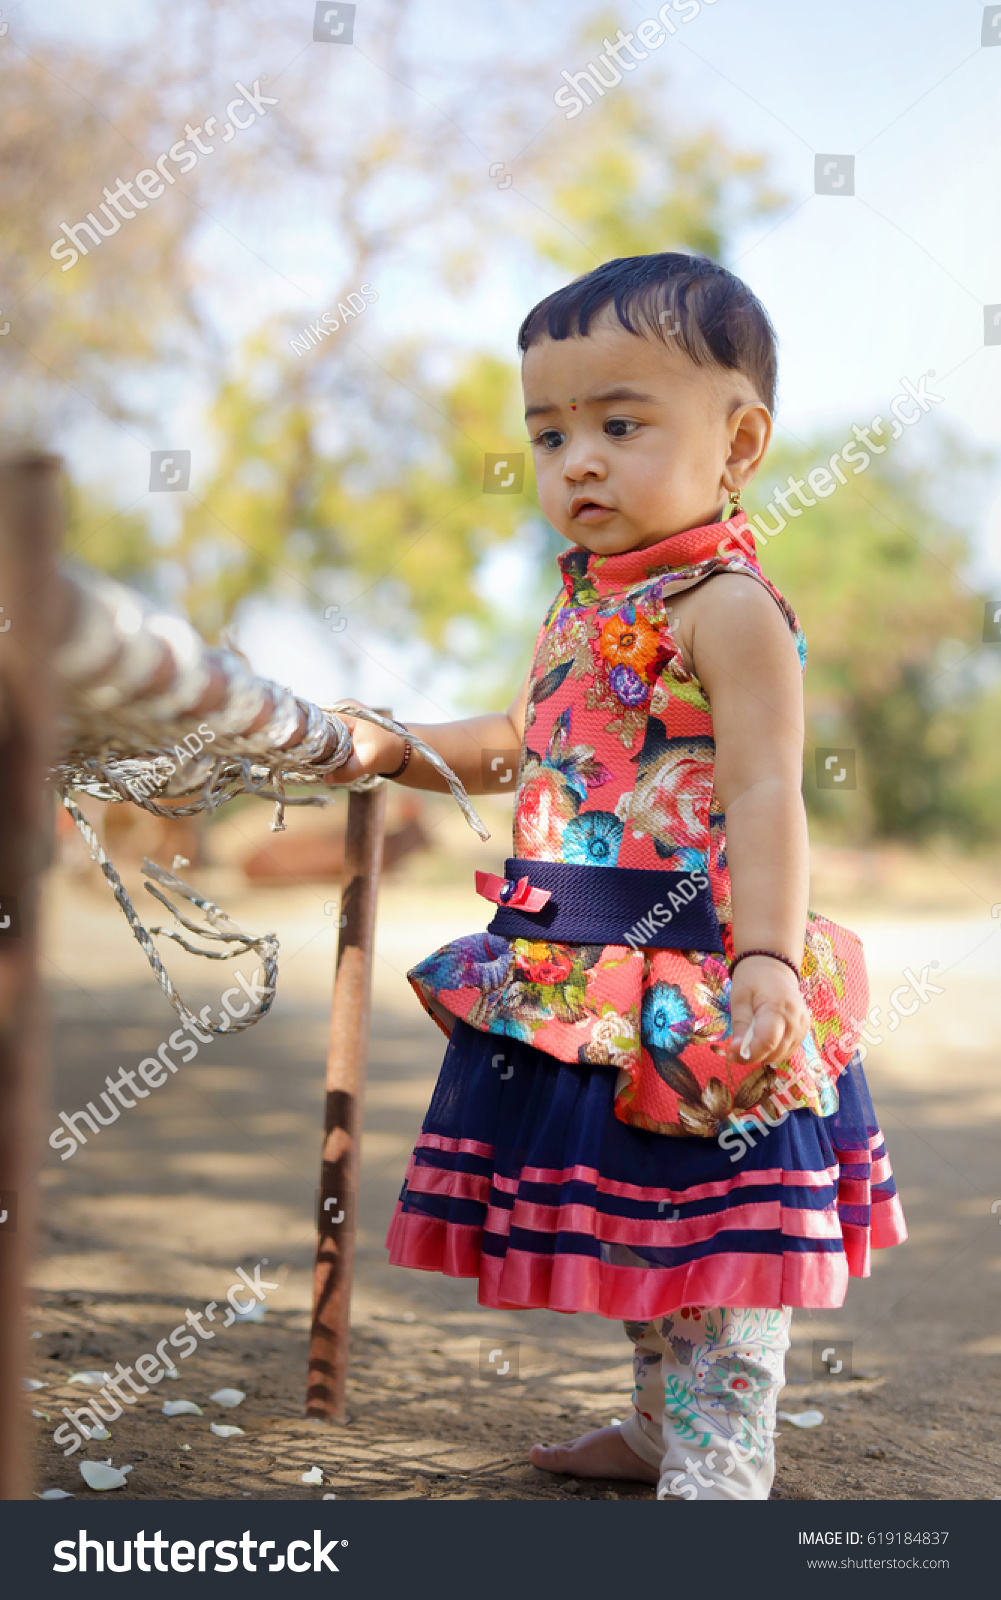 cute indian baby girl stock photo (edit now) 619184837 - shutterstock